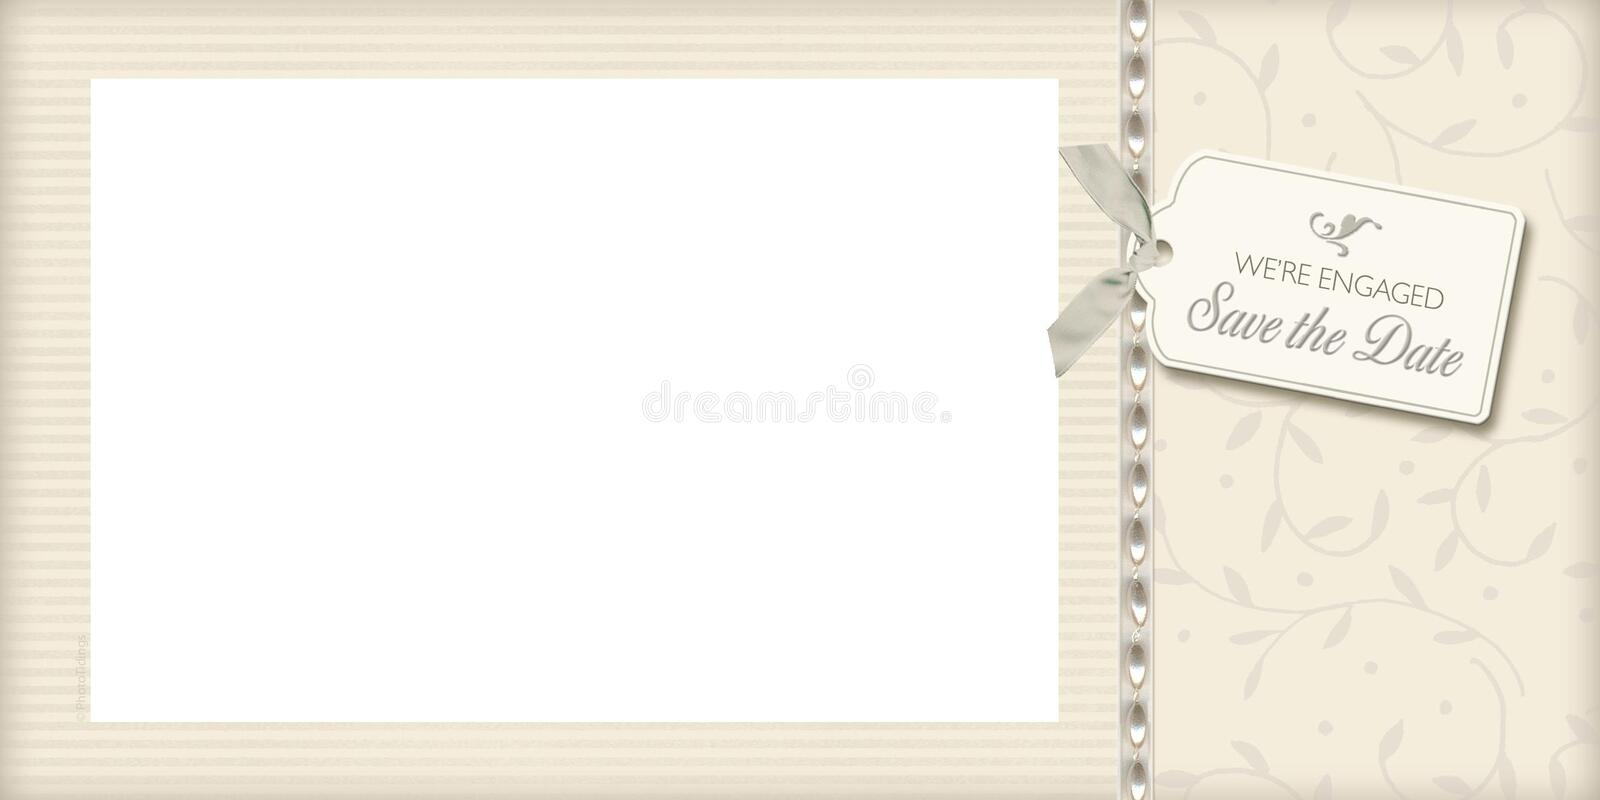 Text, Picture Frame, Paper, Font